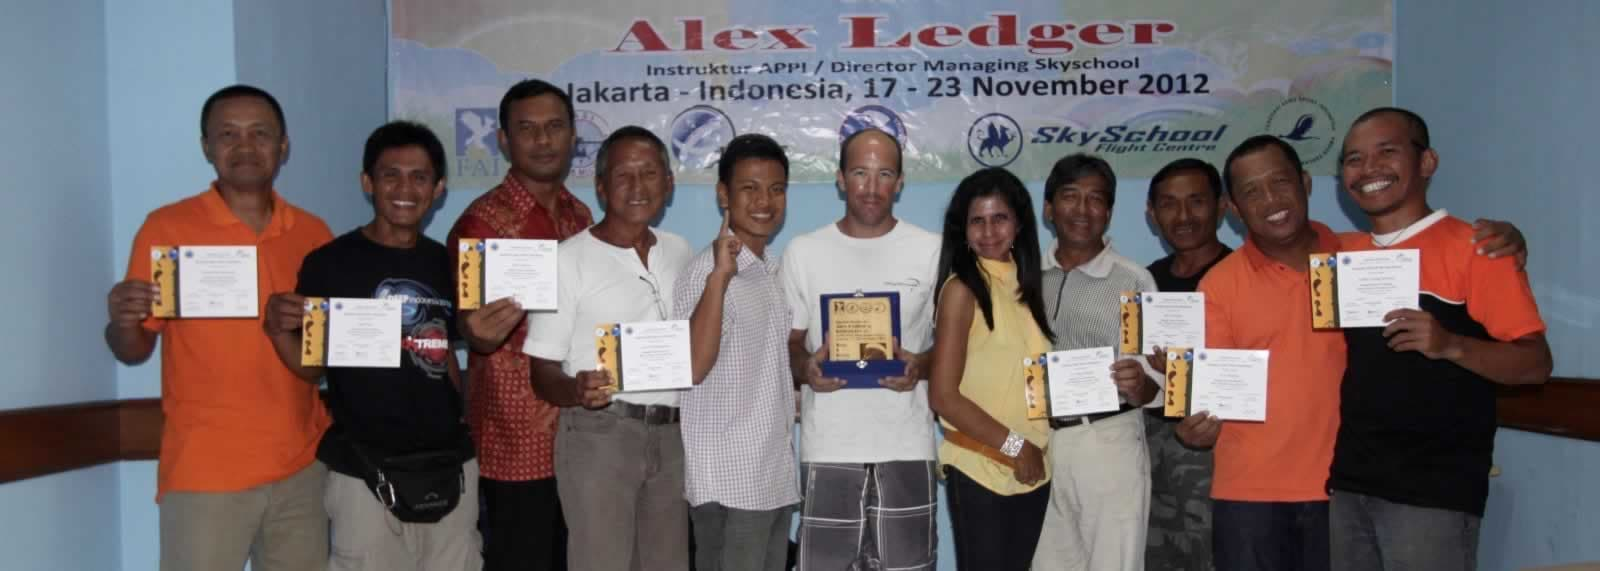 APPI PPG Instructor Course in Indonesia - APPI PPG